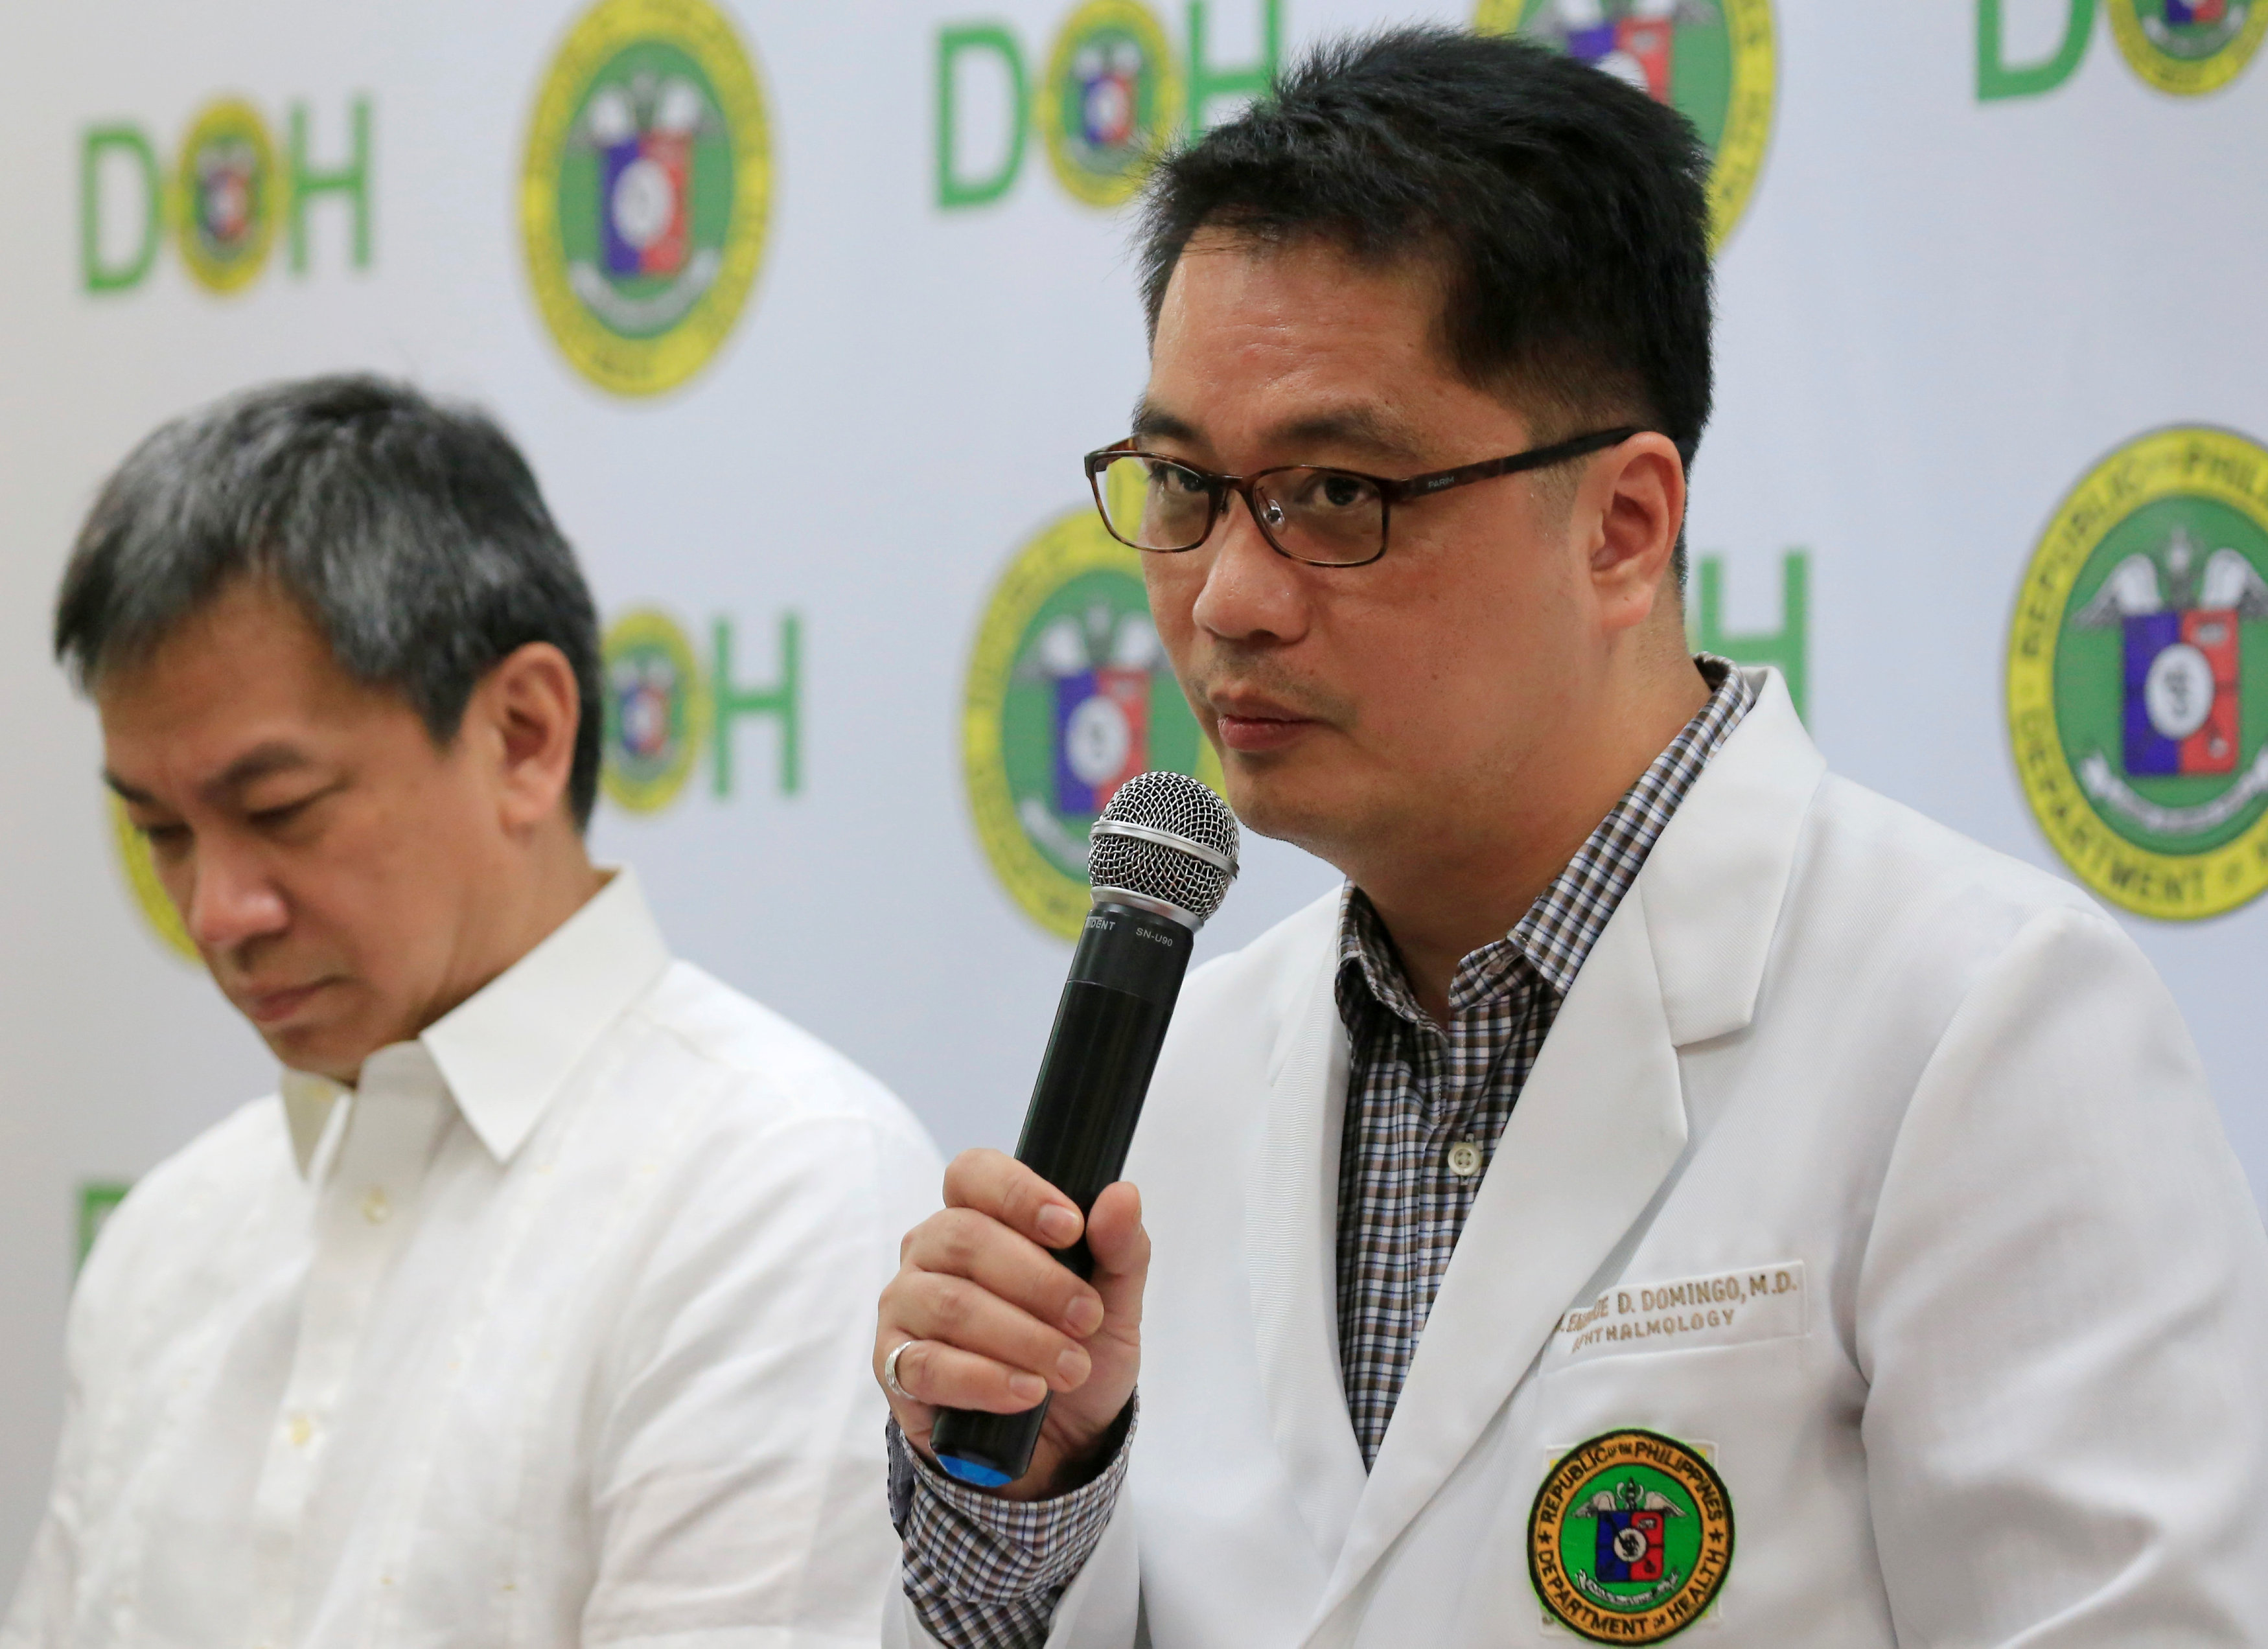 Dr. Rolando Enrique Domingo (R), Undersecretary of the Department of Health (DOH), with Dr. Gerardo Legaspi, Director of the Philippine General Hospital (PGH), answer questions during a news conference at the DOH headquarter in metro Manila, Philippines February 2, 2018.